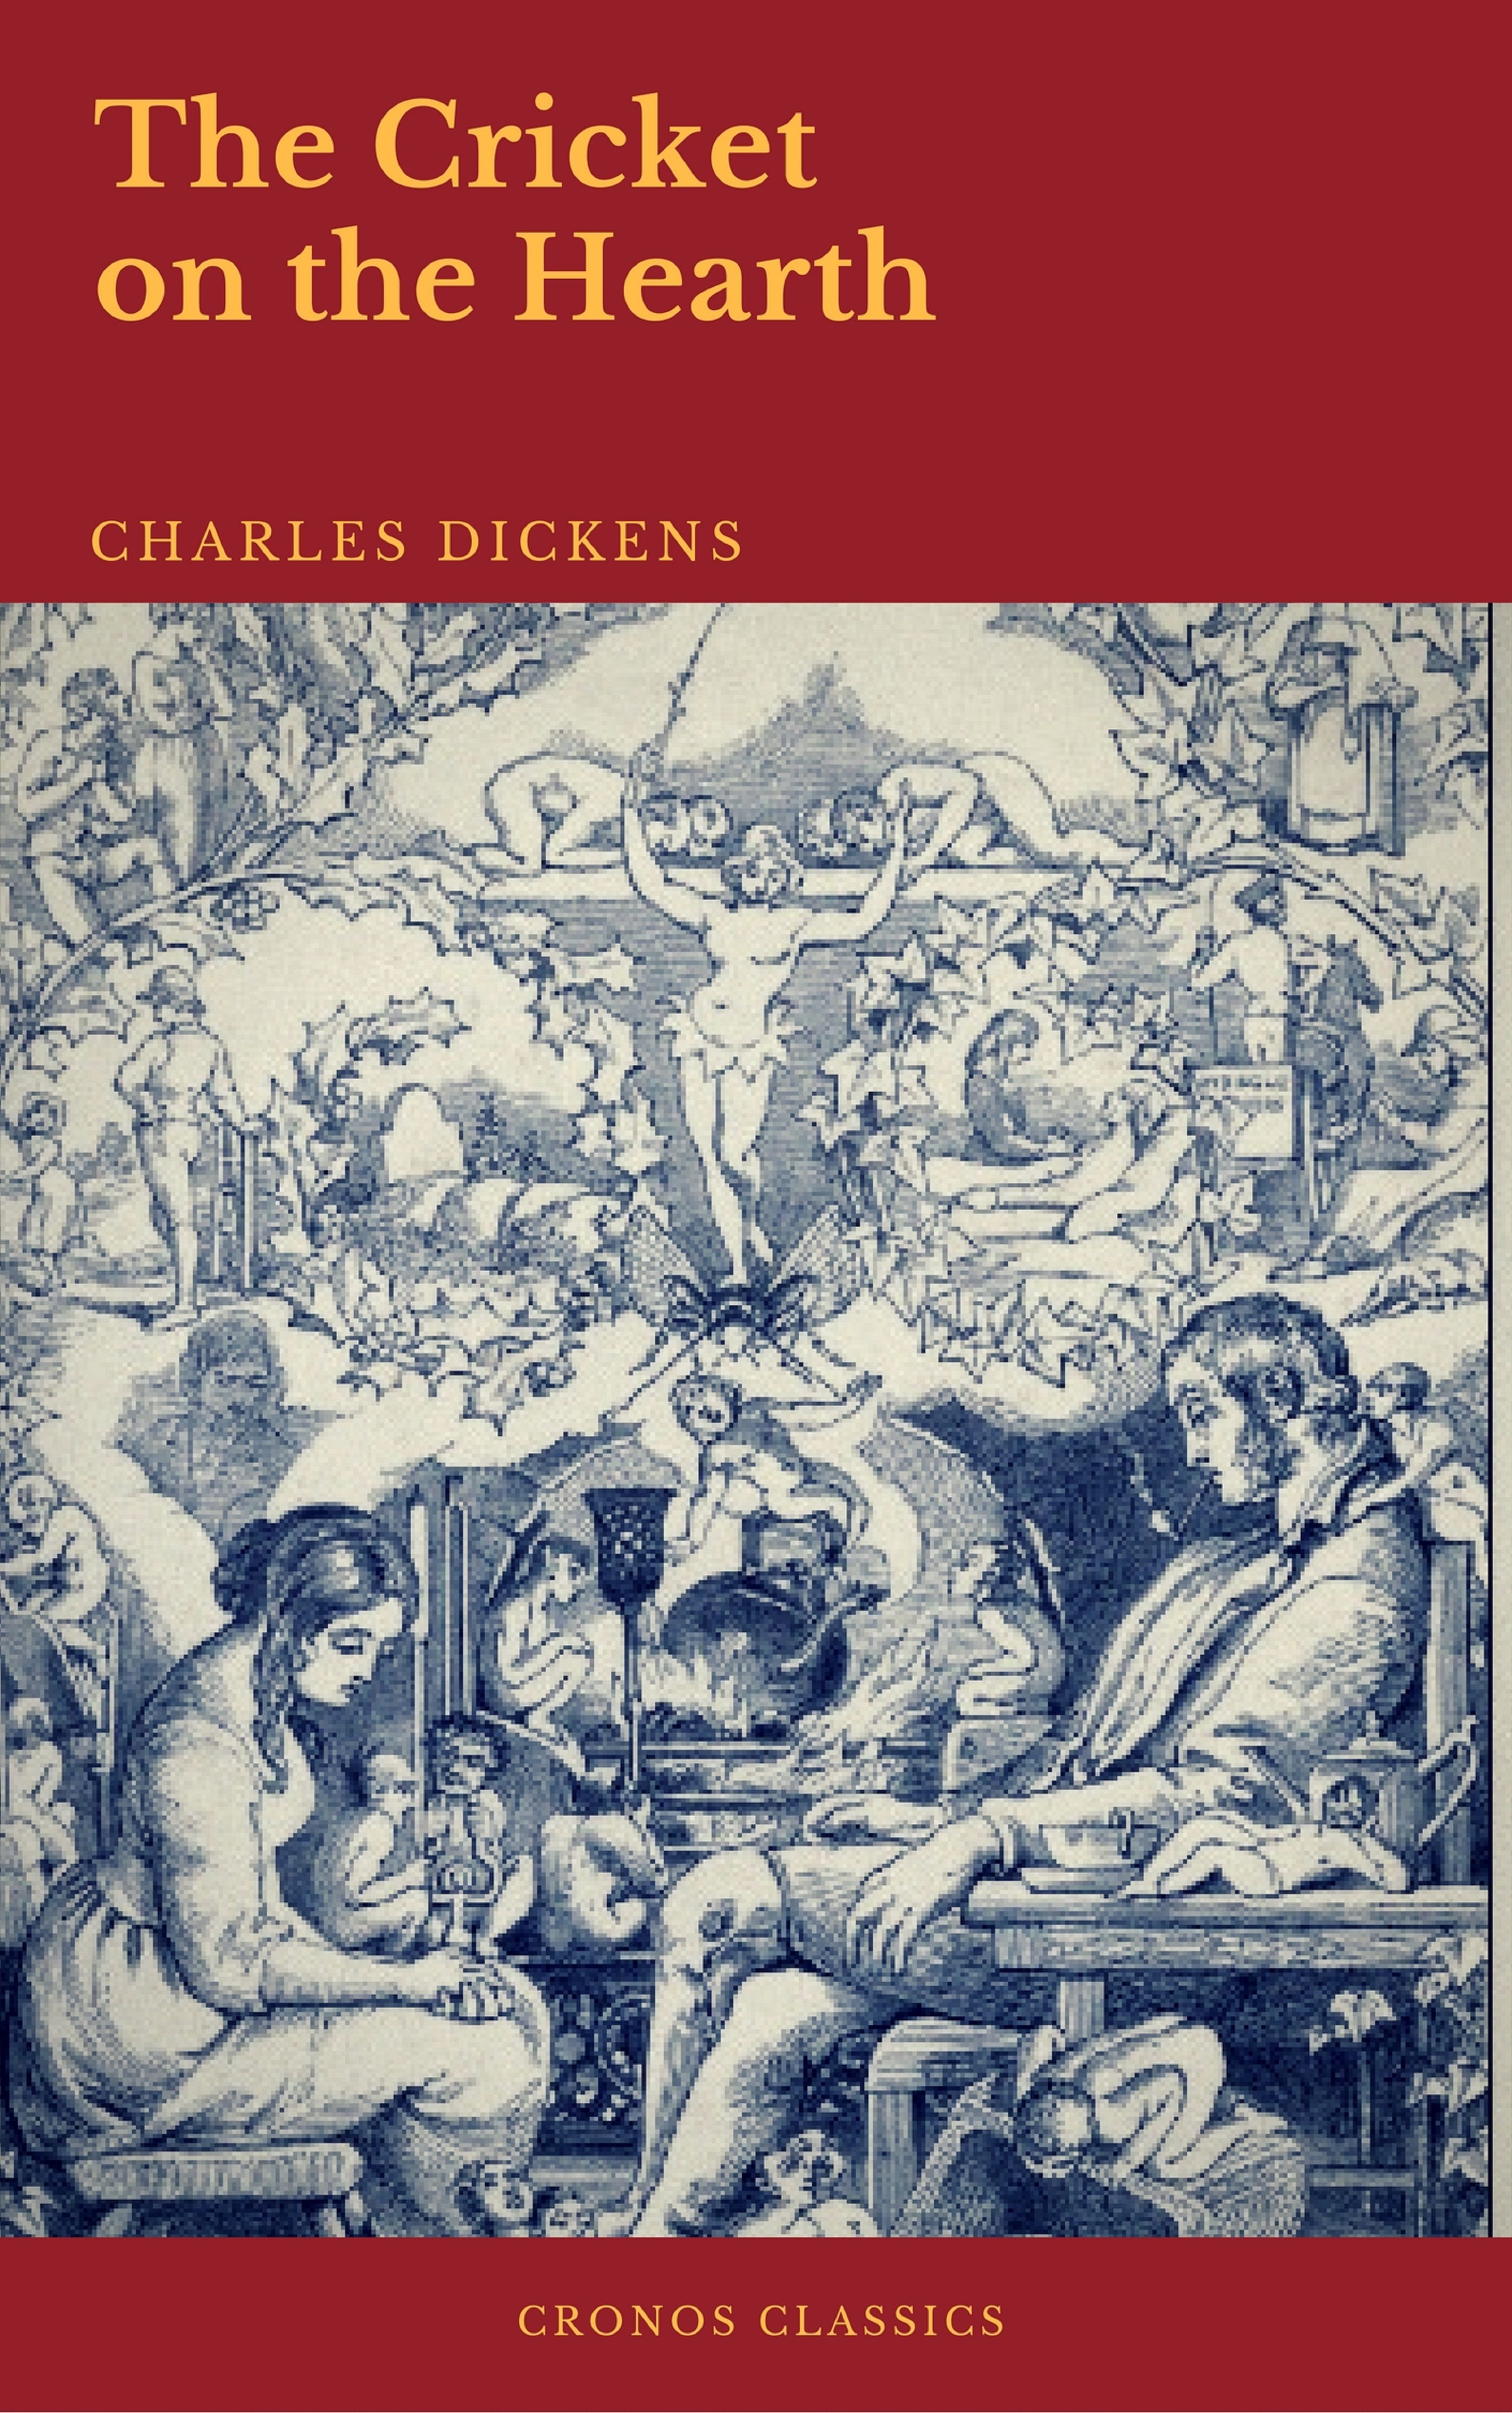 Charles Dickens The Cricket on the Hearth (Cronos Classics)